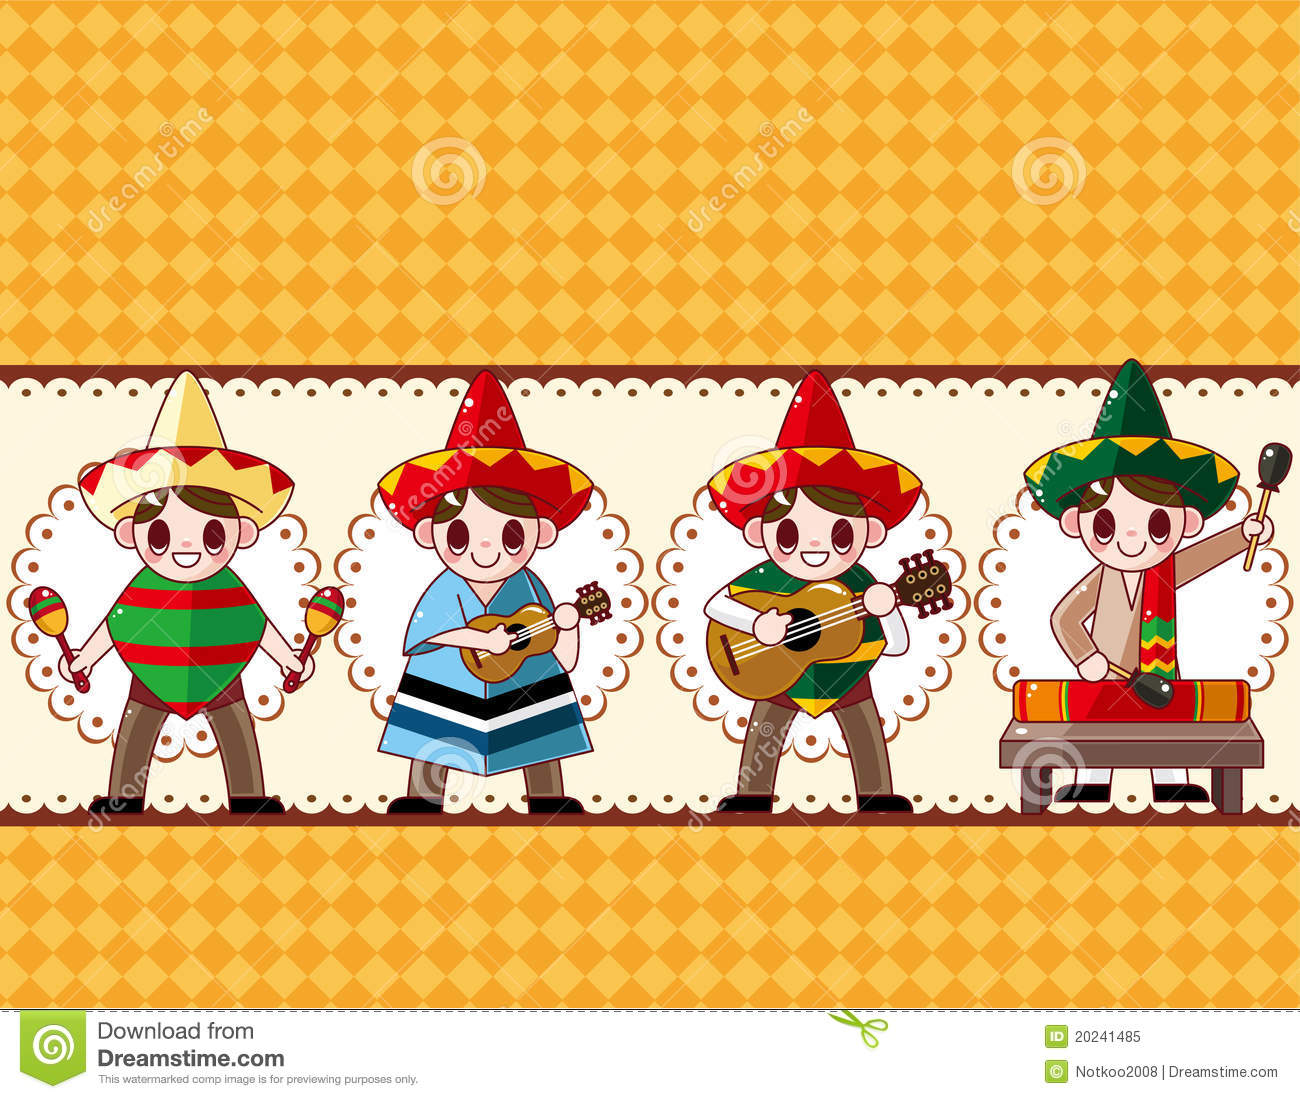 Cartoon Mexican Music Band Board Card Royalty Free Stock